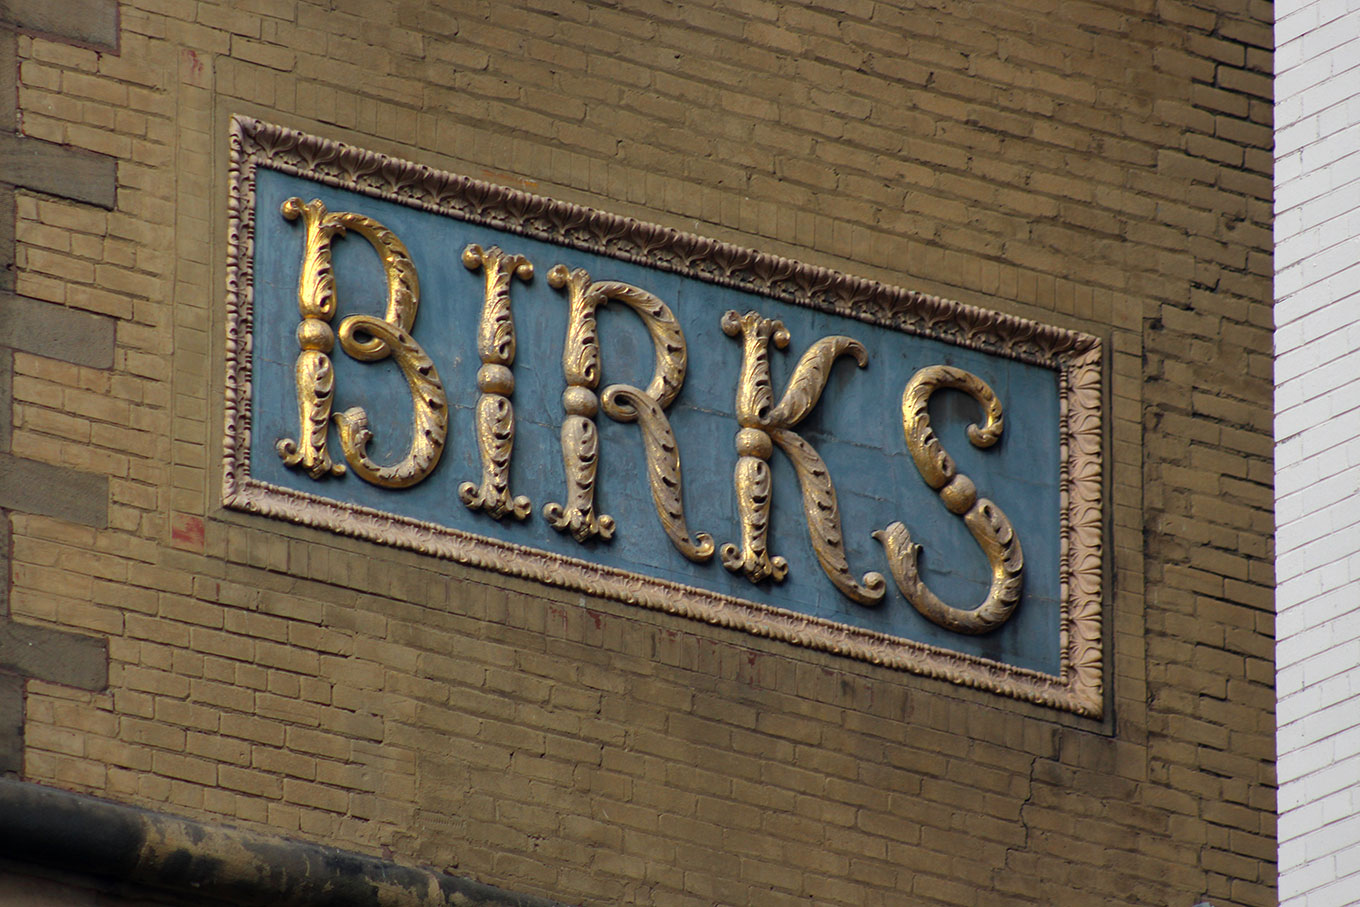 Enormous expressive letters on the side of the Birks Building on Phillips Square.